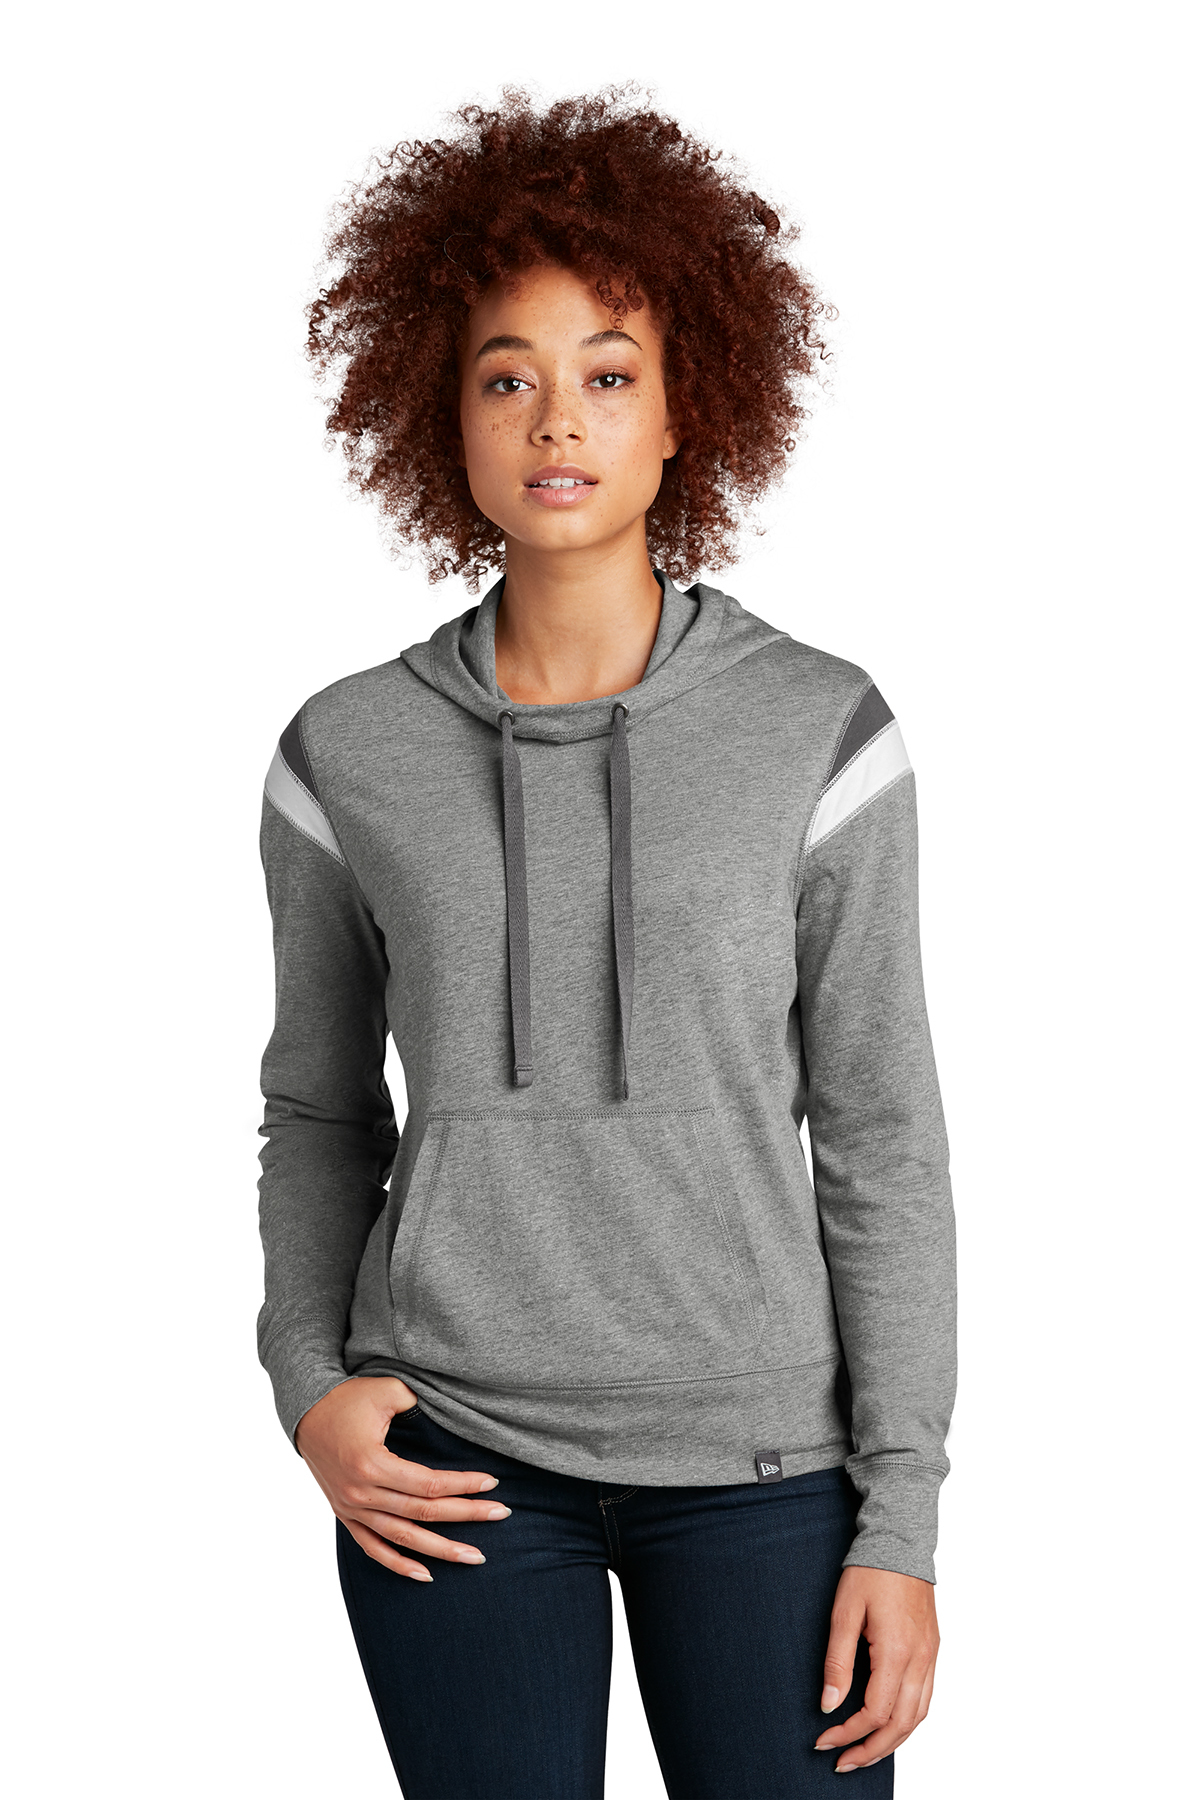 New Era ® LNEA108 - Ladies Heritage Blend Varsity Hoodie